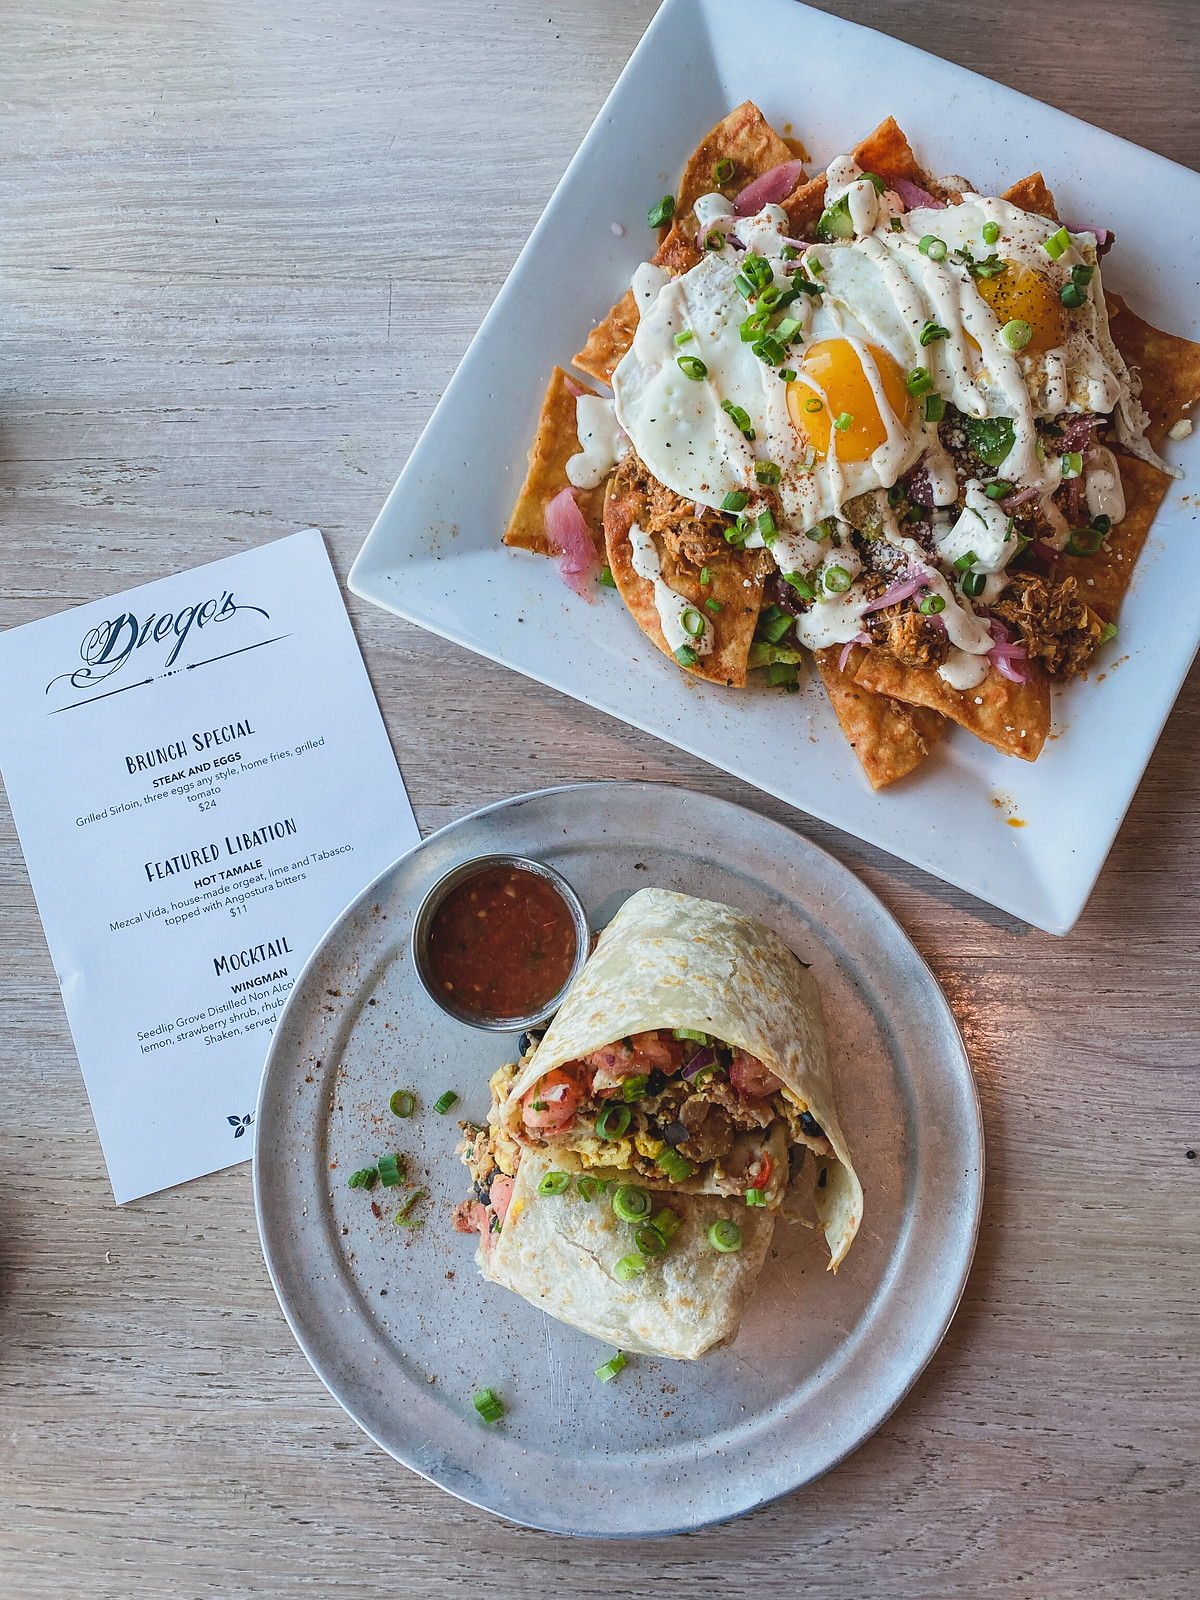 Diego's Tinga Chilaquiles The Bowen Breakfast Burrito | Where to Eat in Newport | 48 Hours in Newport Itinerary | A First Timer's Guide to 2 Days in Newport Rhode Island | What to do in Newport | Newport Travel Guide | Best Things to do in Newport | Best Places to Visit in Newport